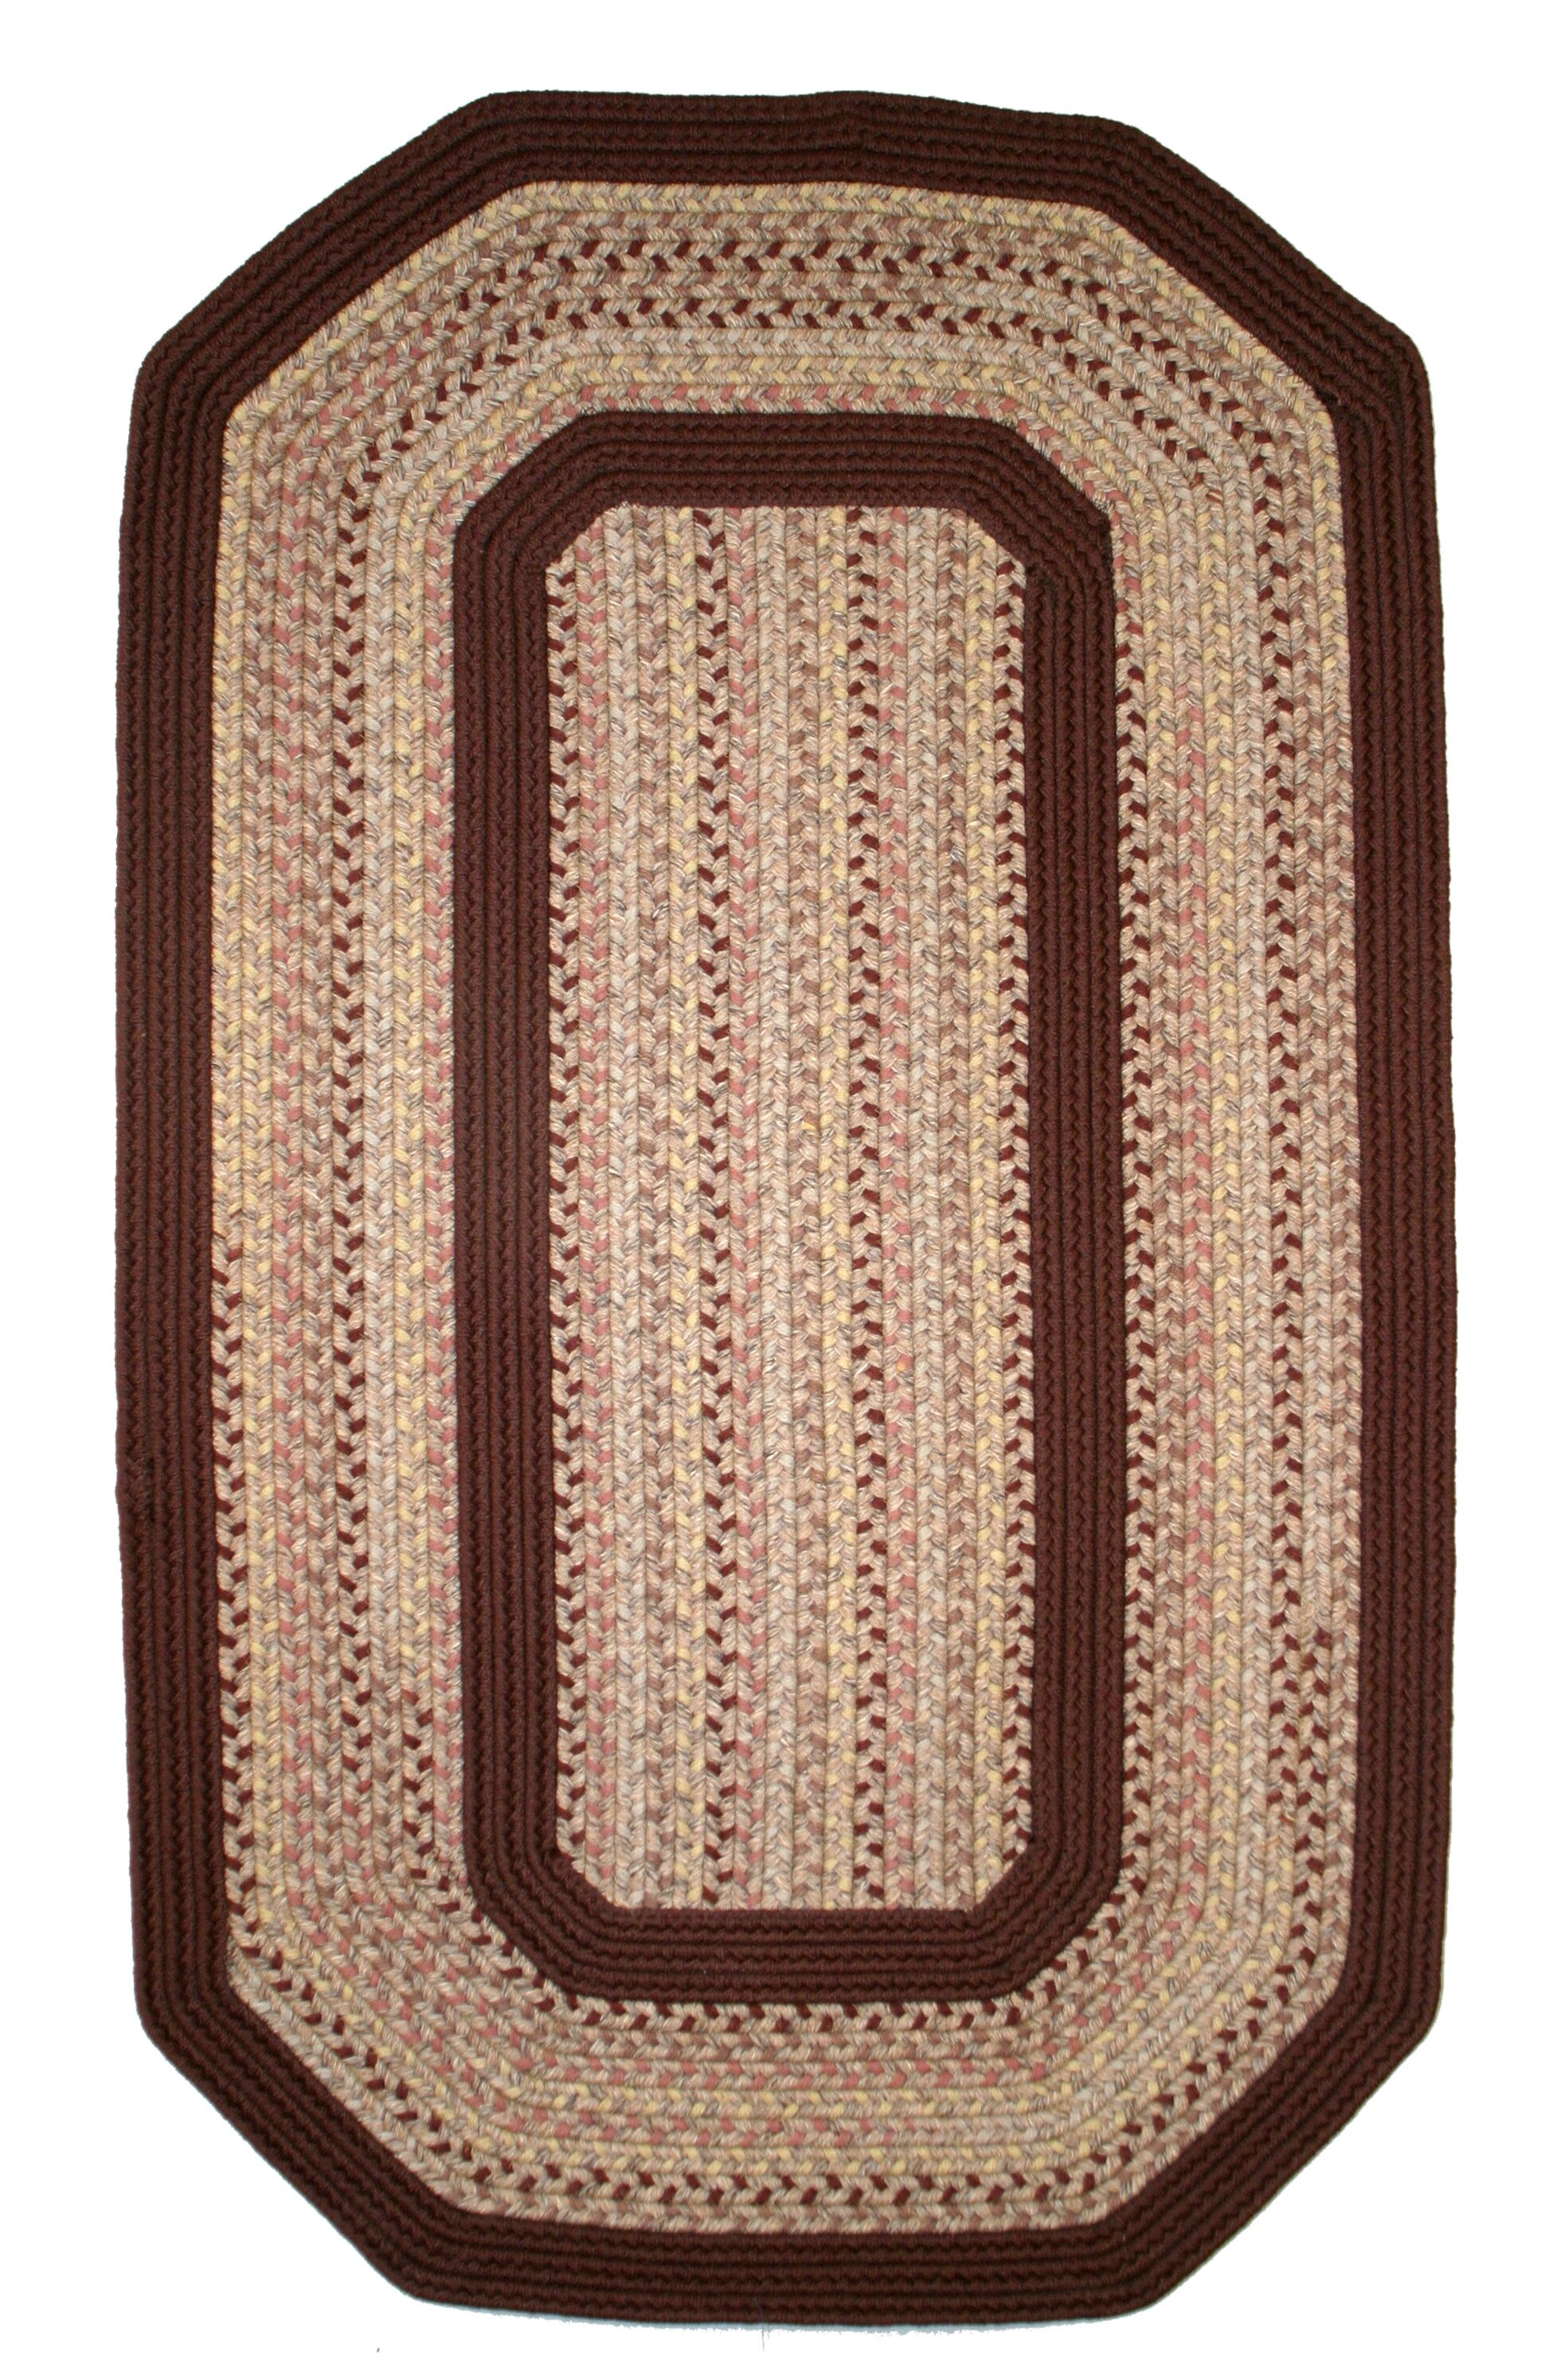 Pioneer Valley II Buckskin with Burgundy Solids Elongated Octagon Rug Rug Size: Elongated Octagon 8' x 10'